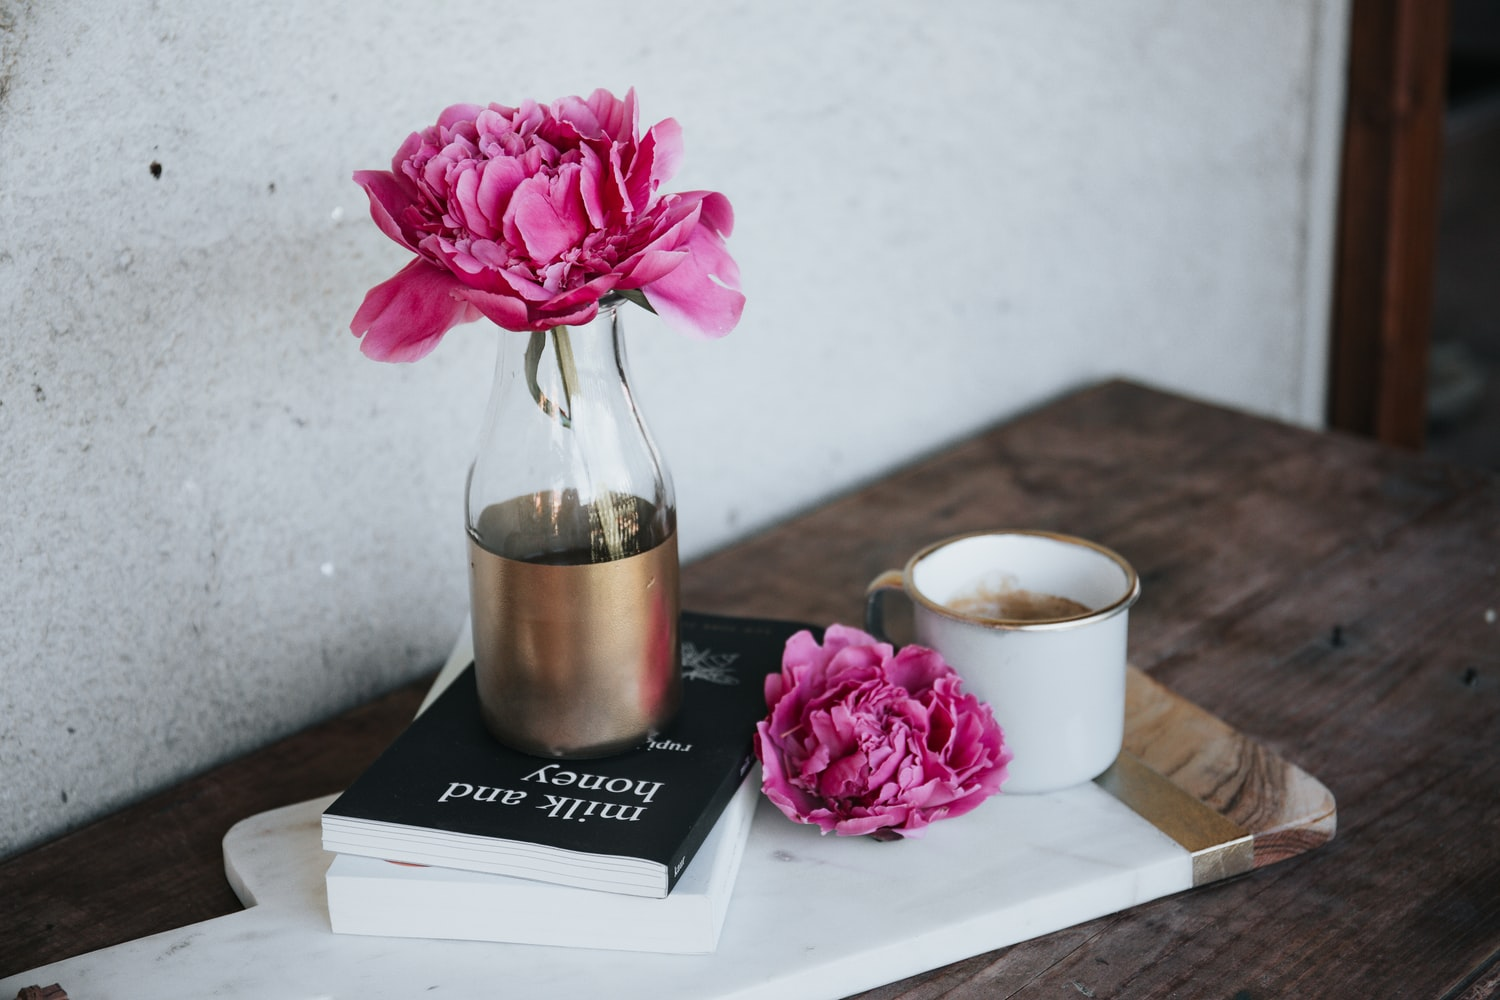 vase with pink flower